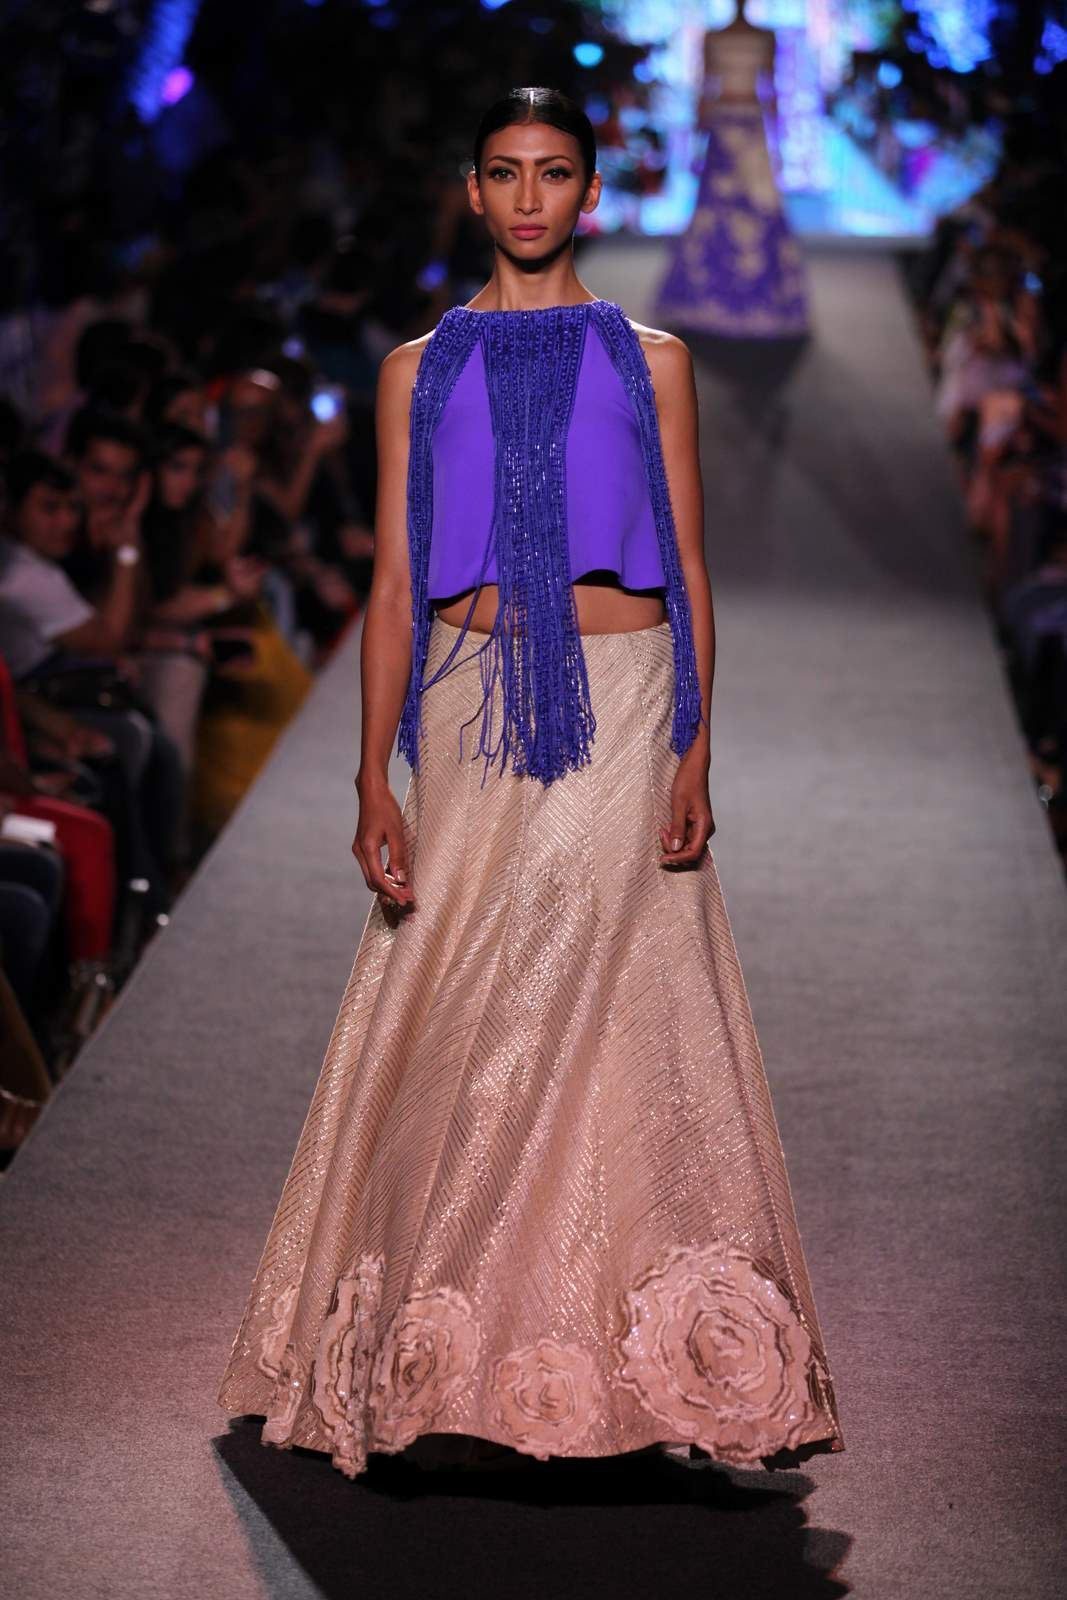 Manish malhotra supported a global campaign aimed to empower young